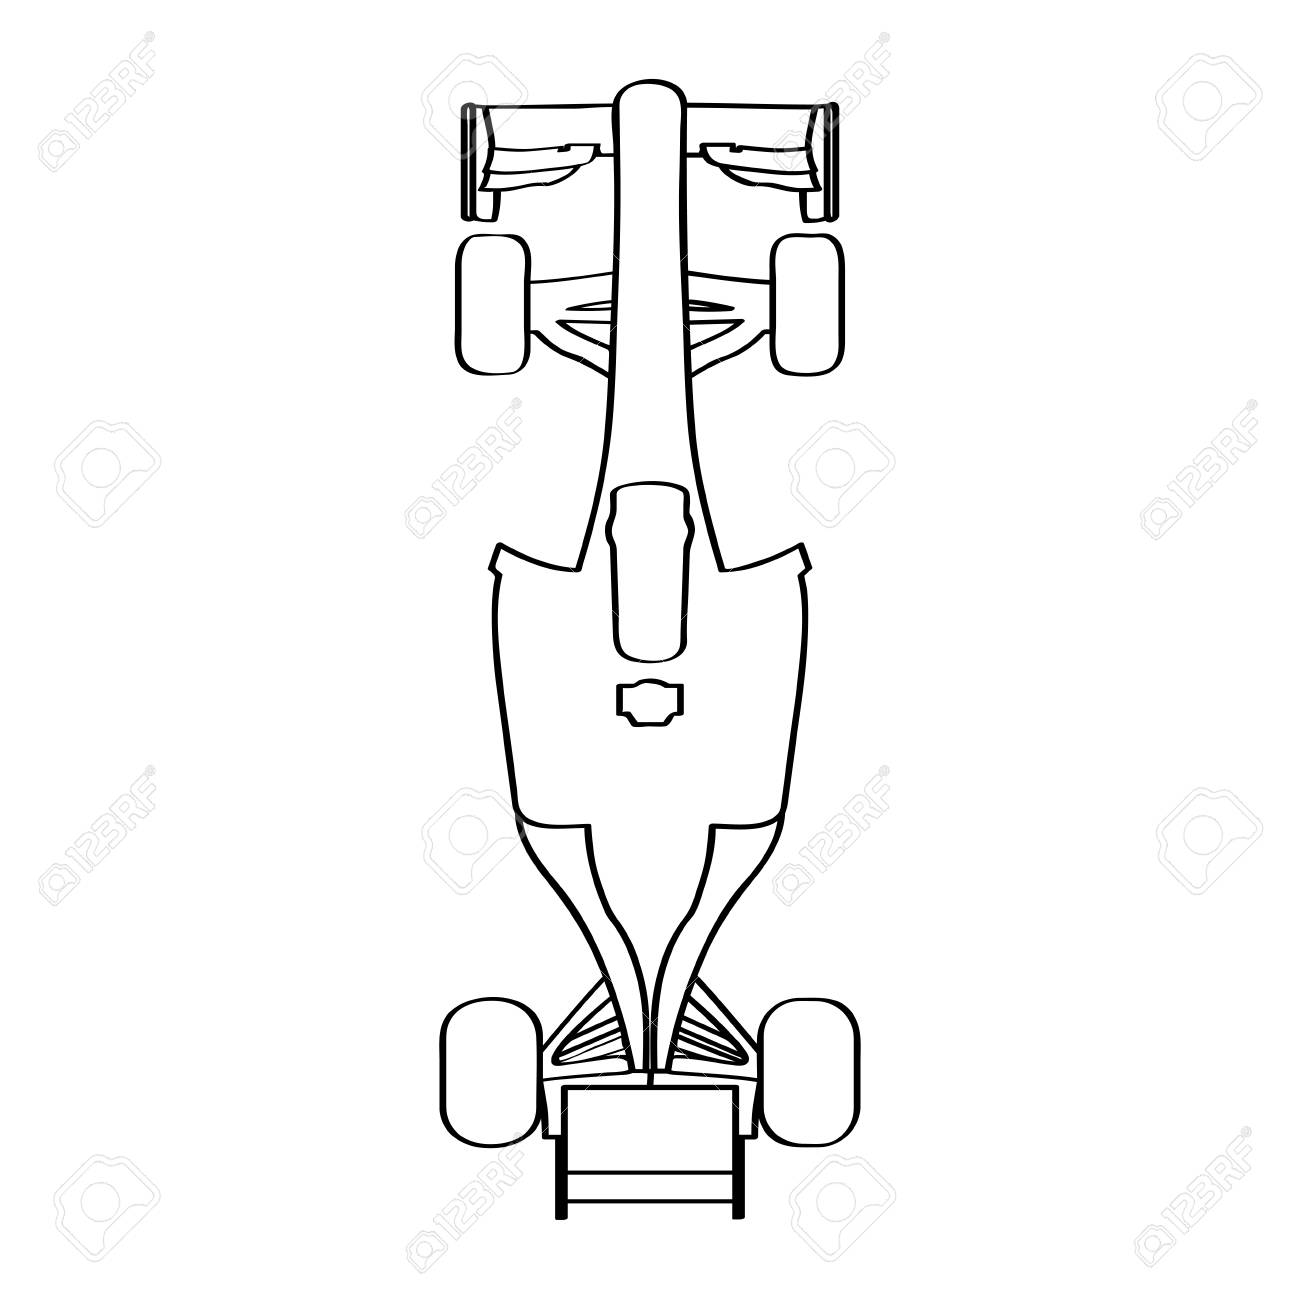 top view of a racing car outline vector illustration royalty free Concept Cars Top View top view of a racing car outline vector illustration stock vector 86998941